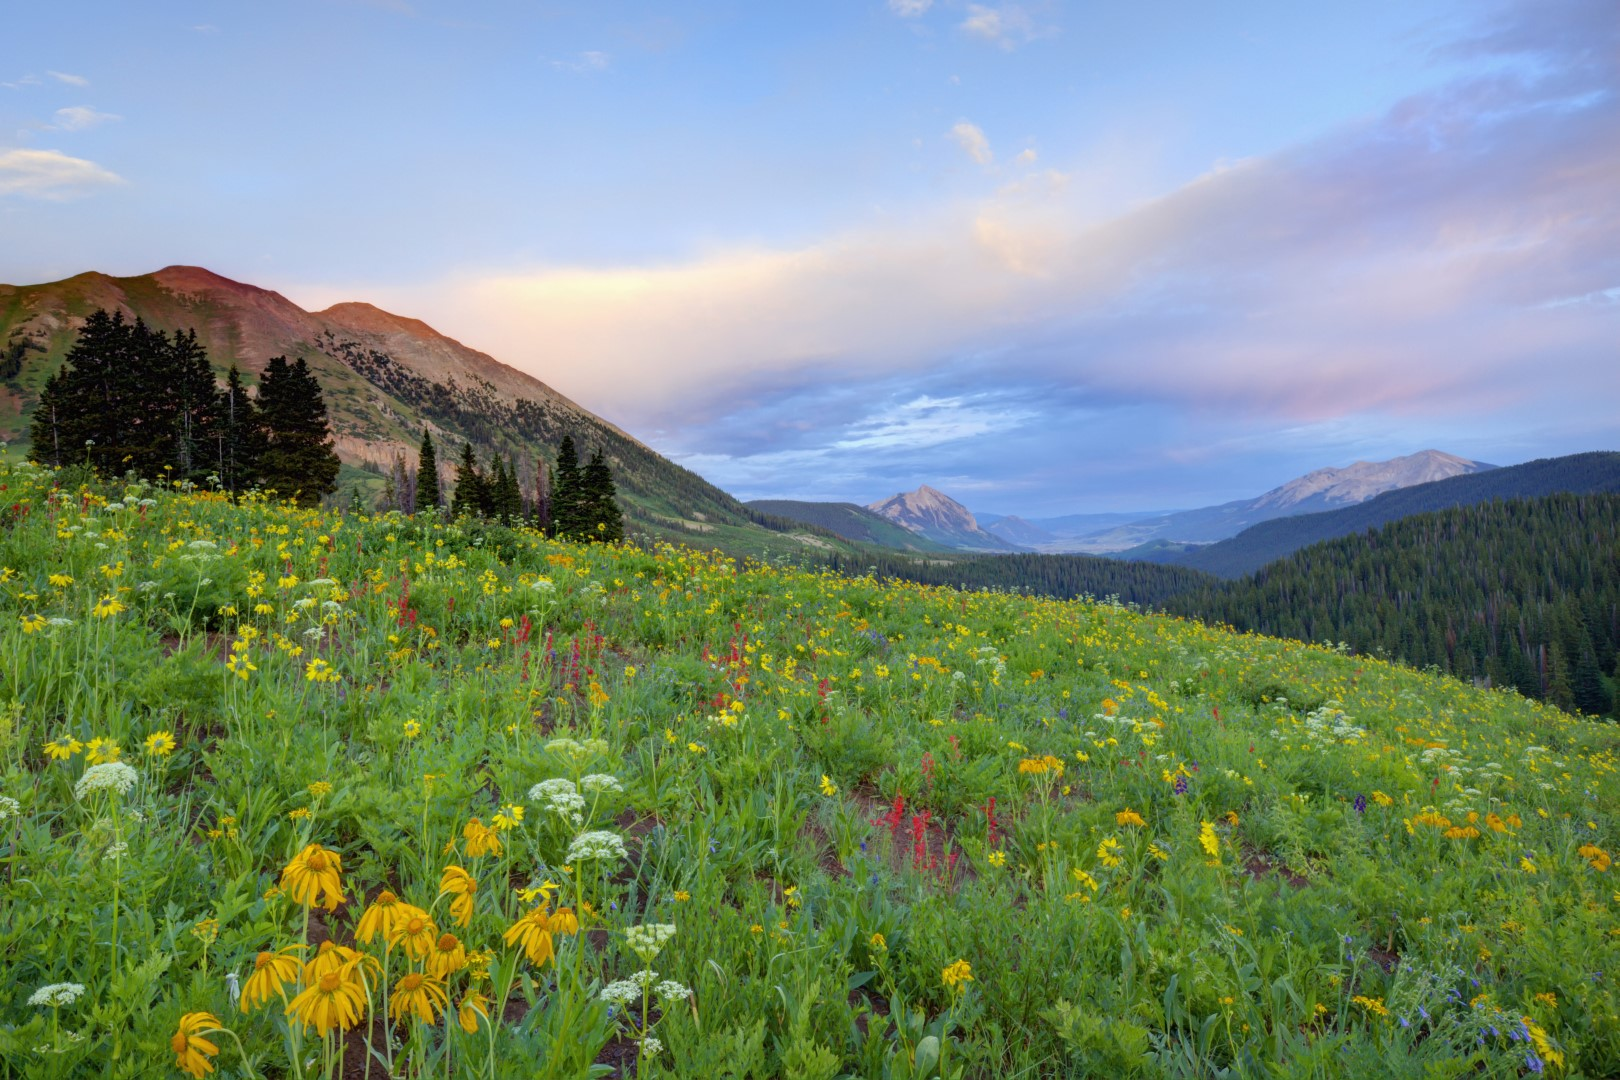 wp-content/uploads/itineraries/USA/CoMtn/crested-butte-flowers.jpg